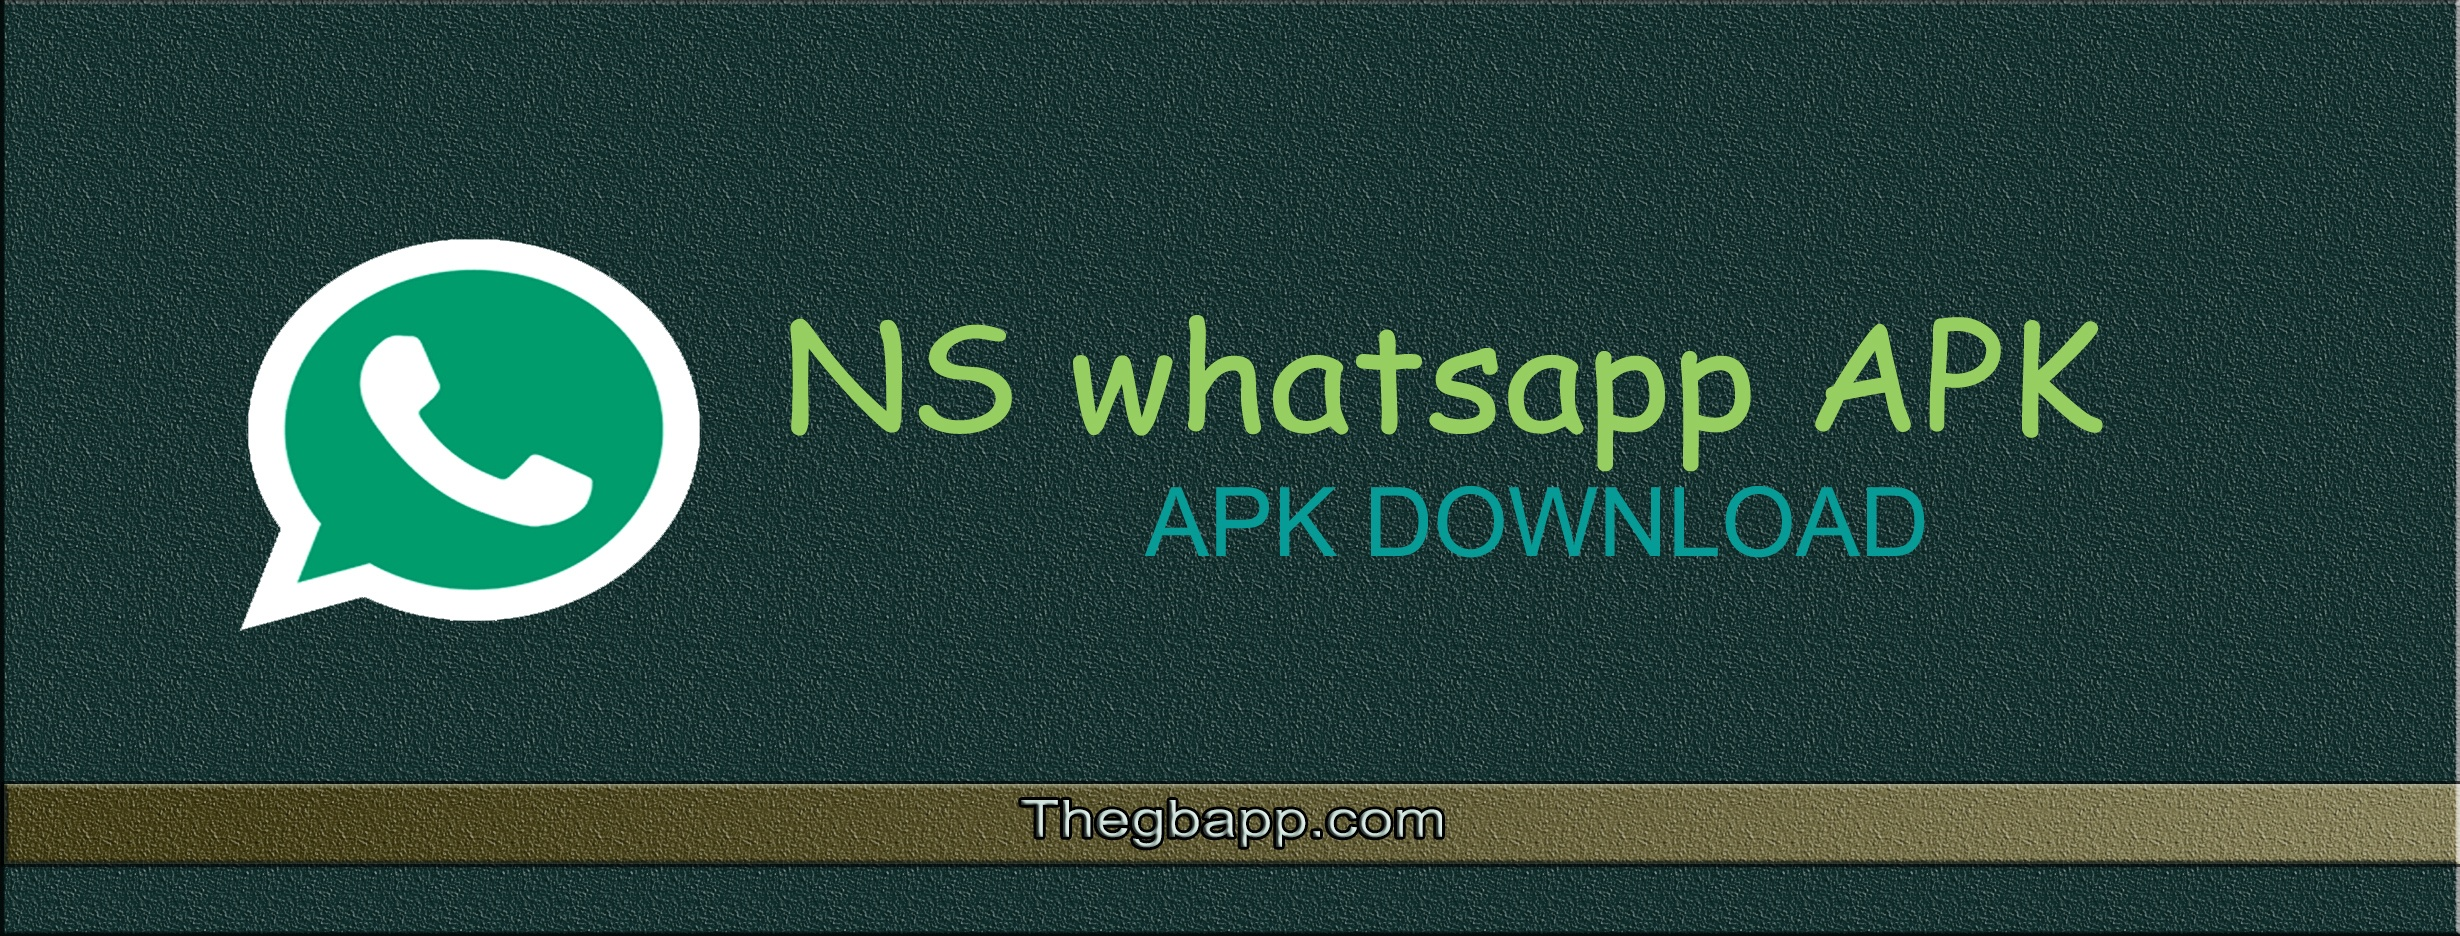 NS whatsapp